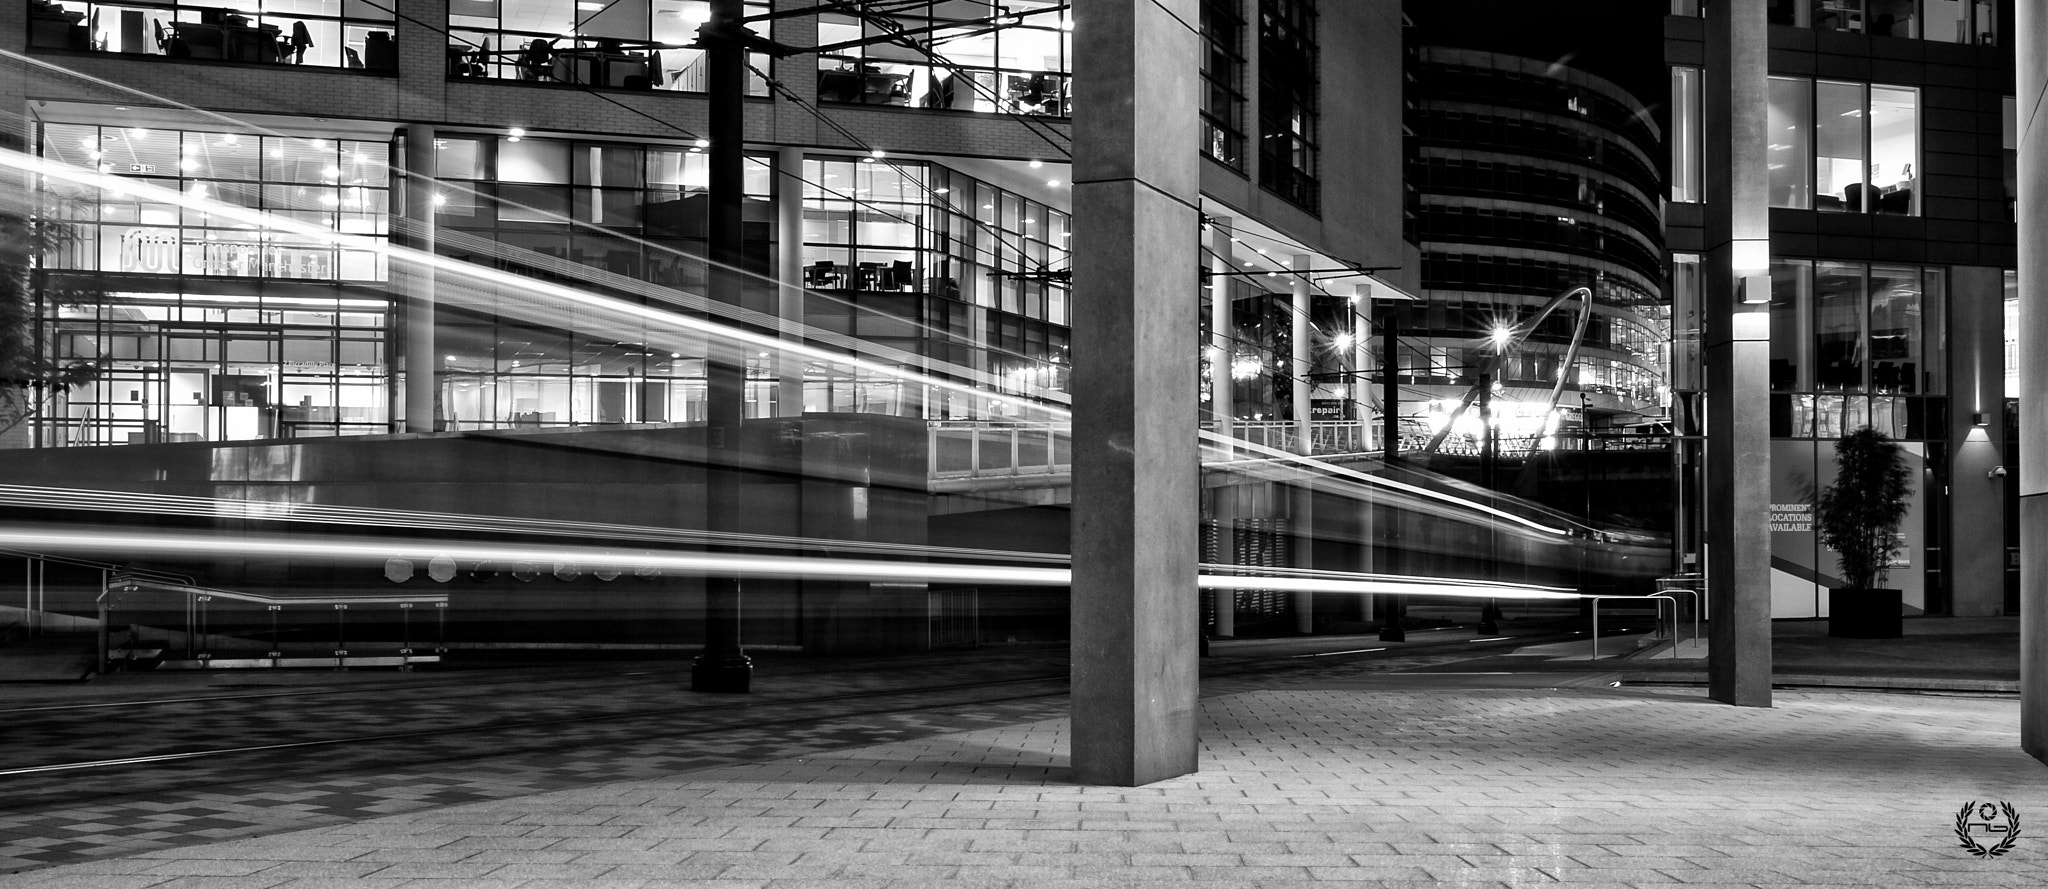 Photograph Innercity Flash by Neil Batty on 500px